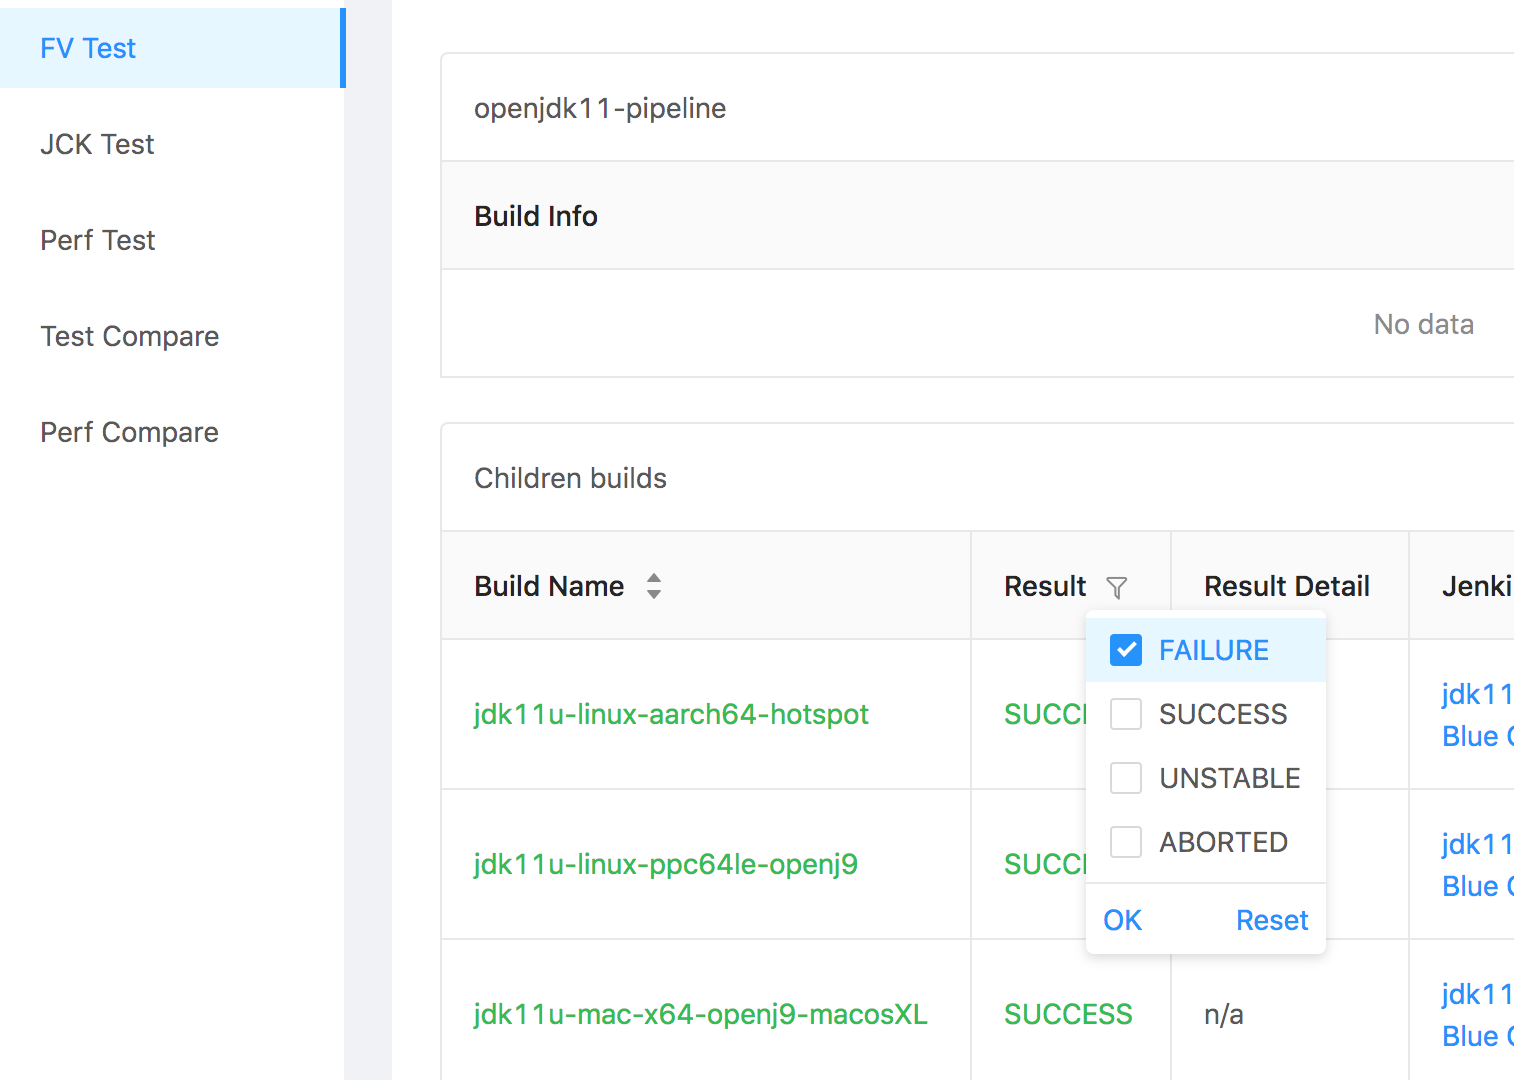 Filter by result in job list view seems broken · Issue #55